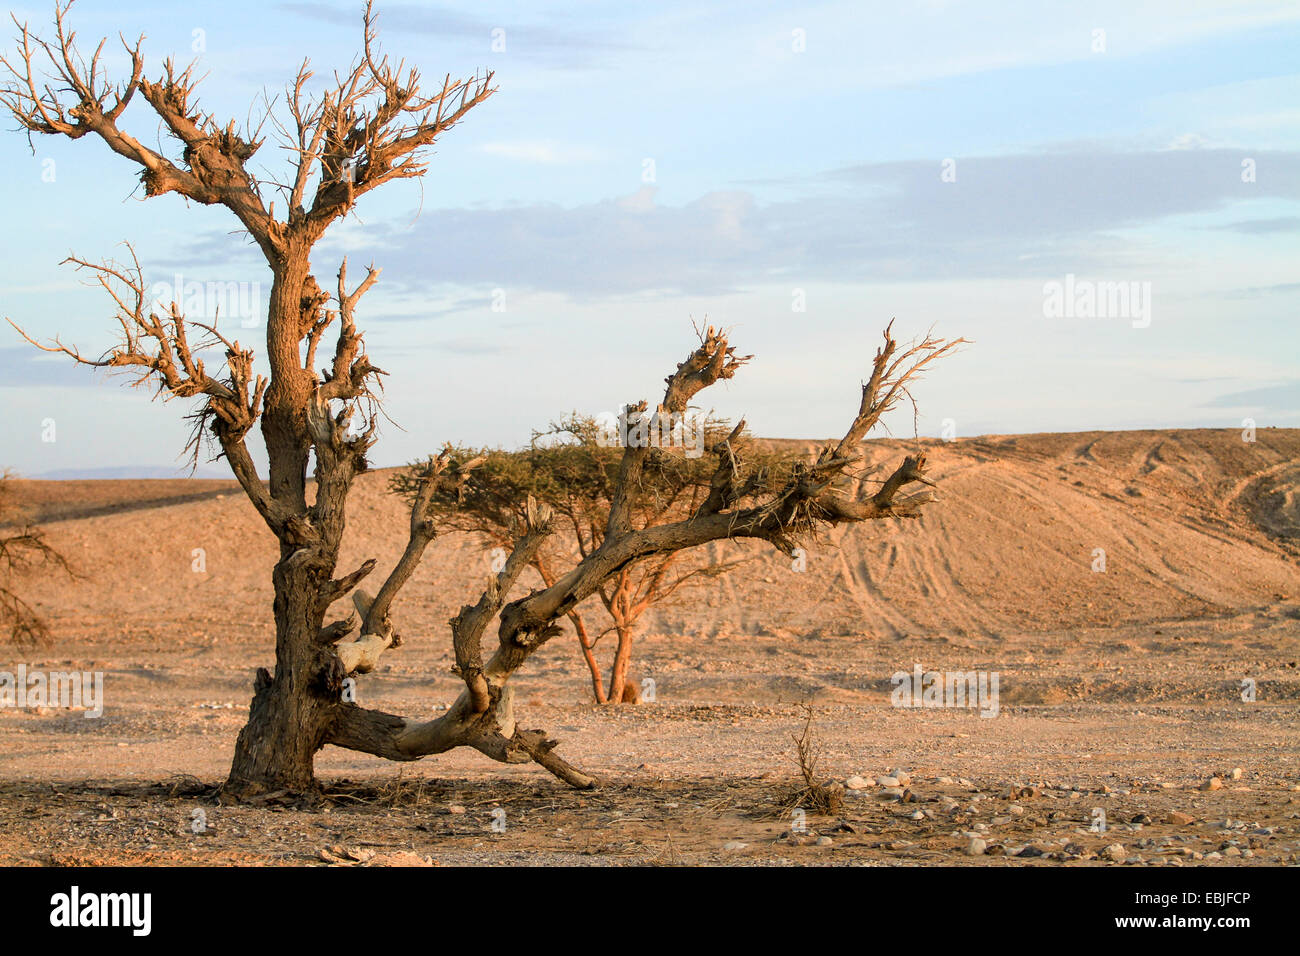 Dry parched tree in a desert landscape - Stock Image